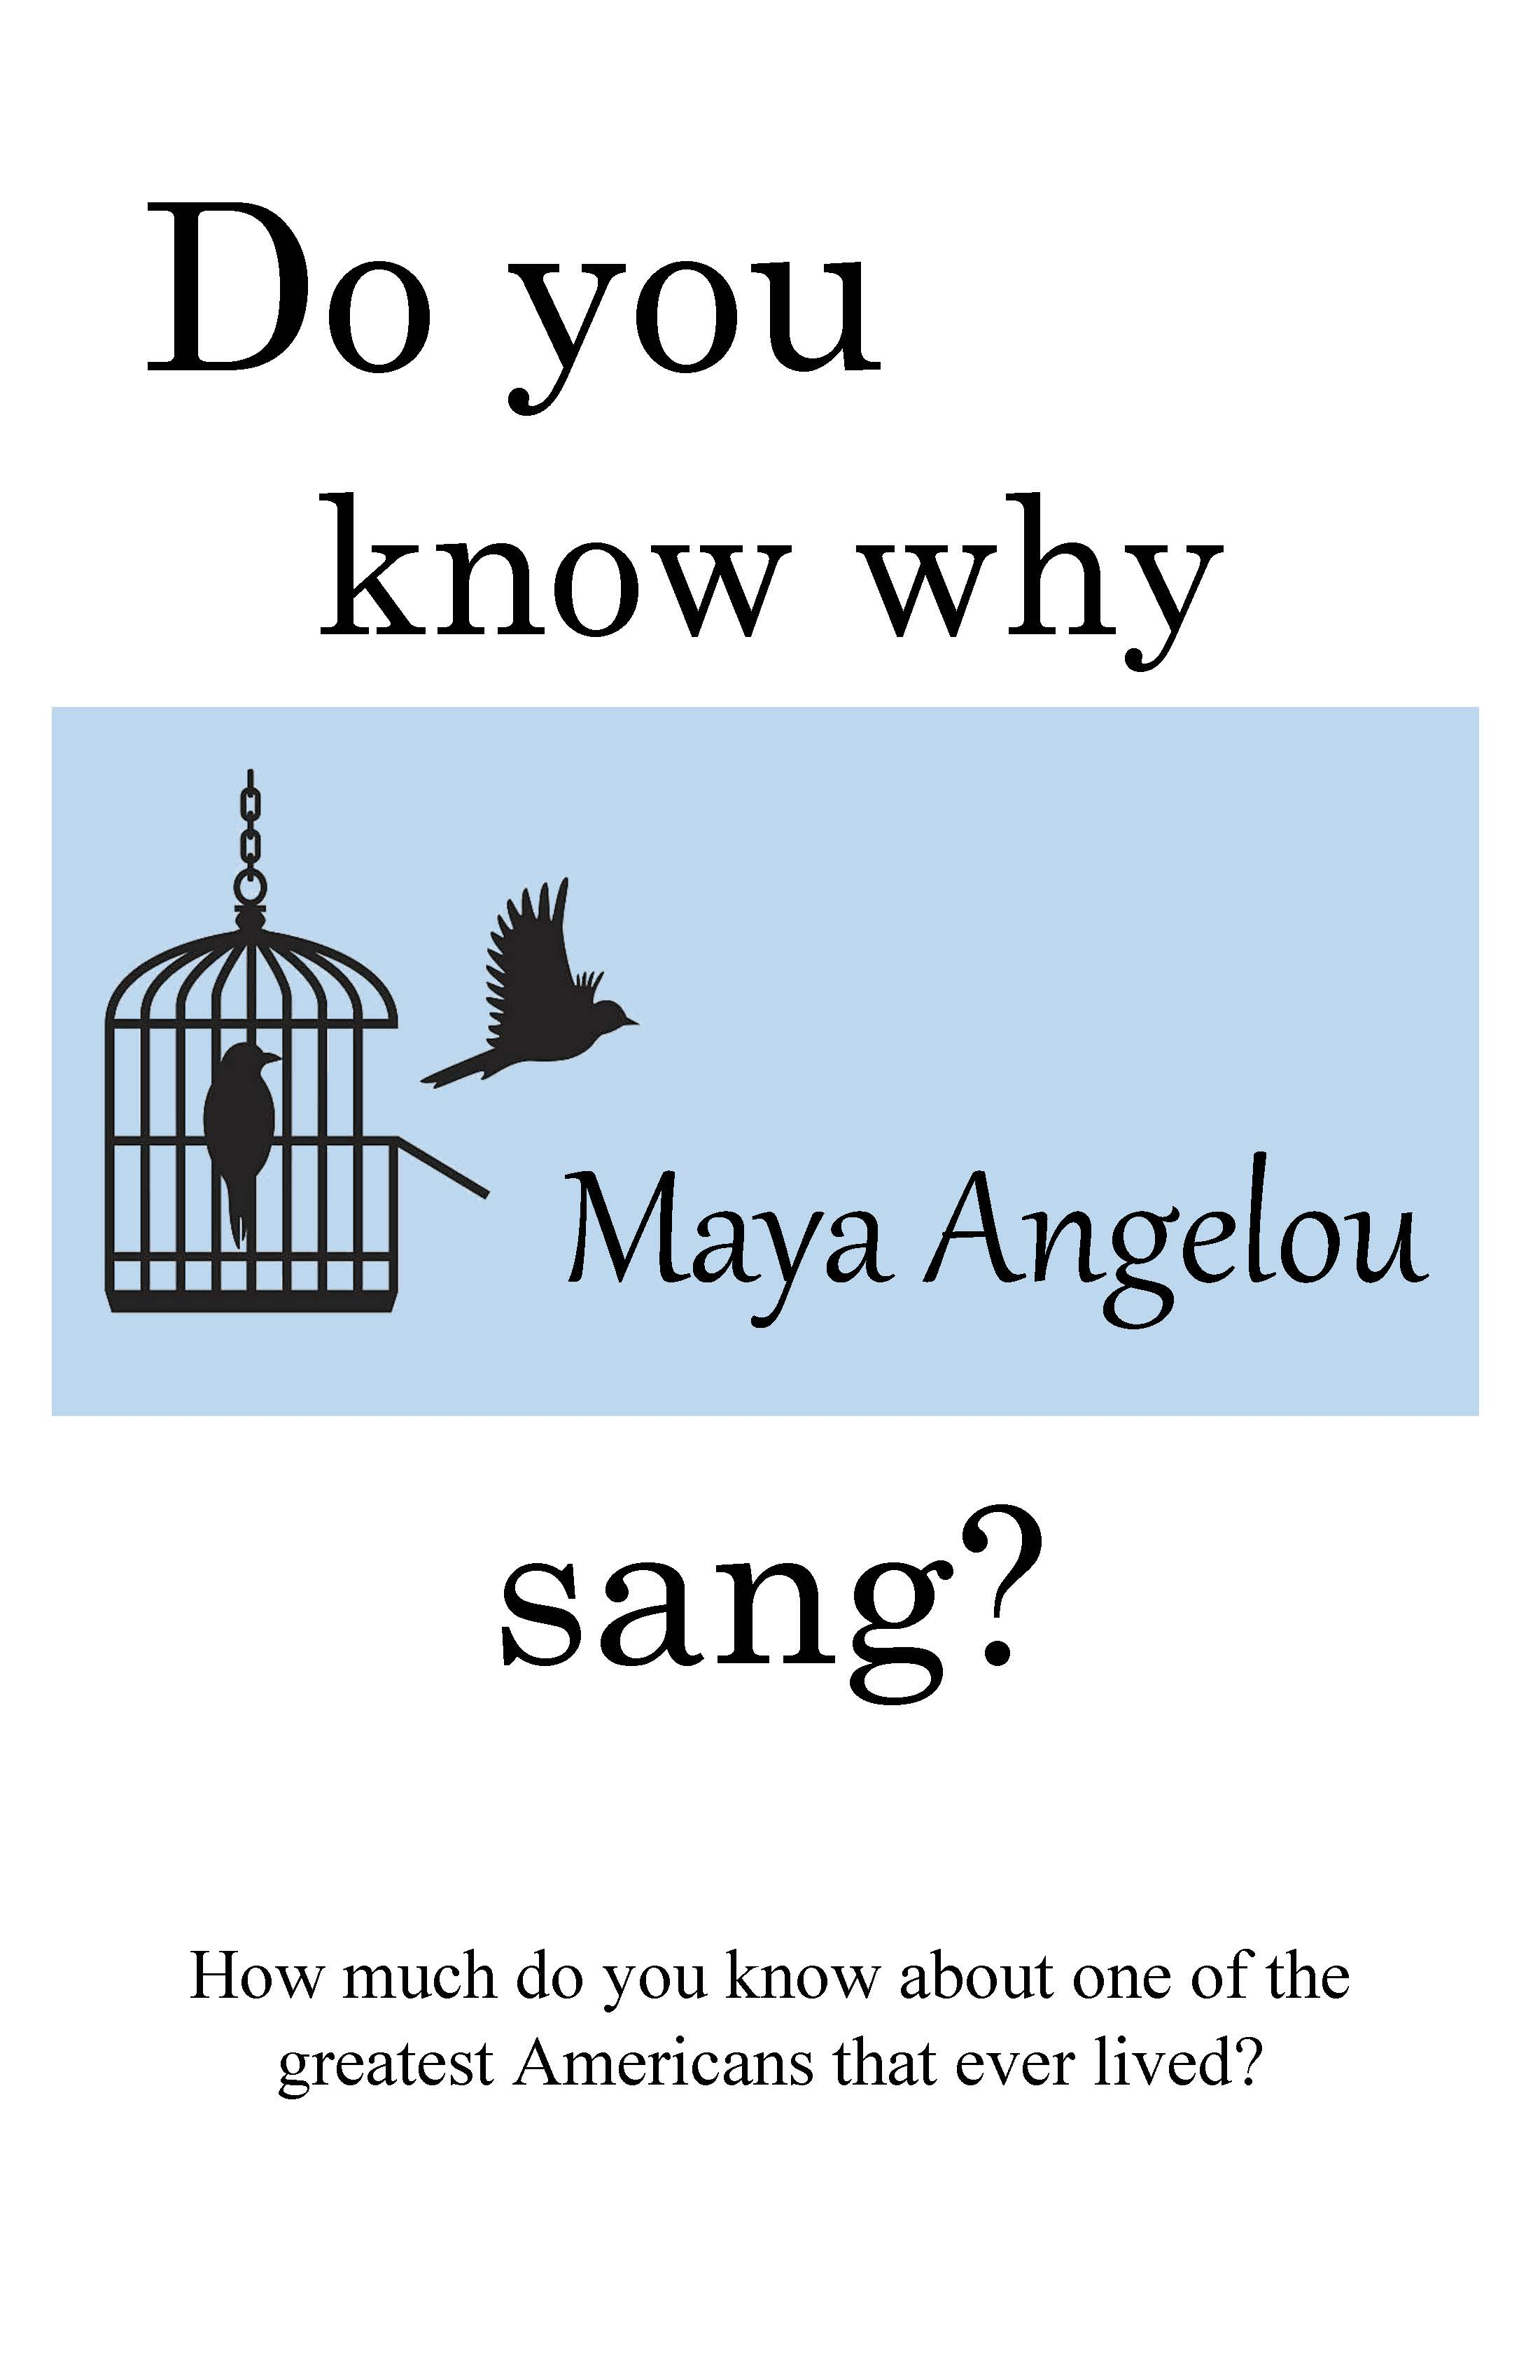 Maya Angelou display poster image